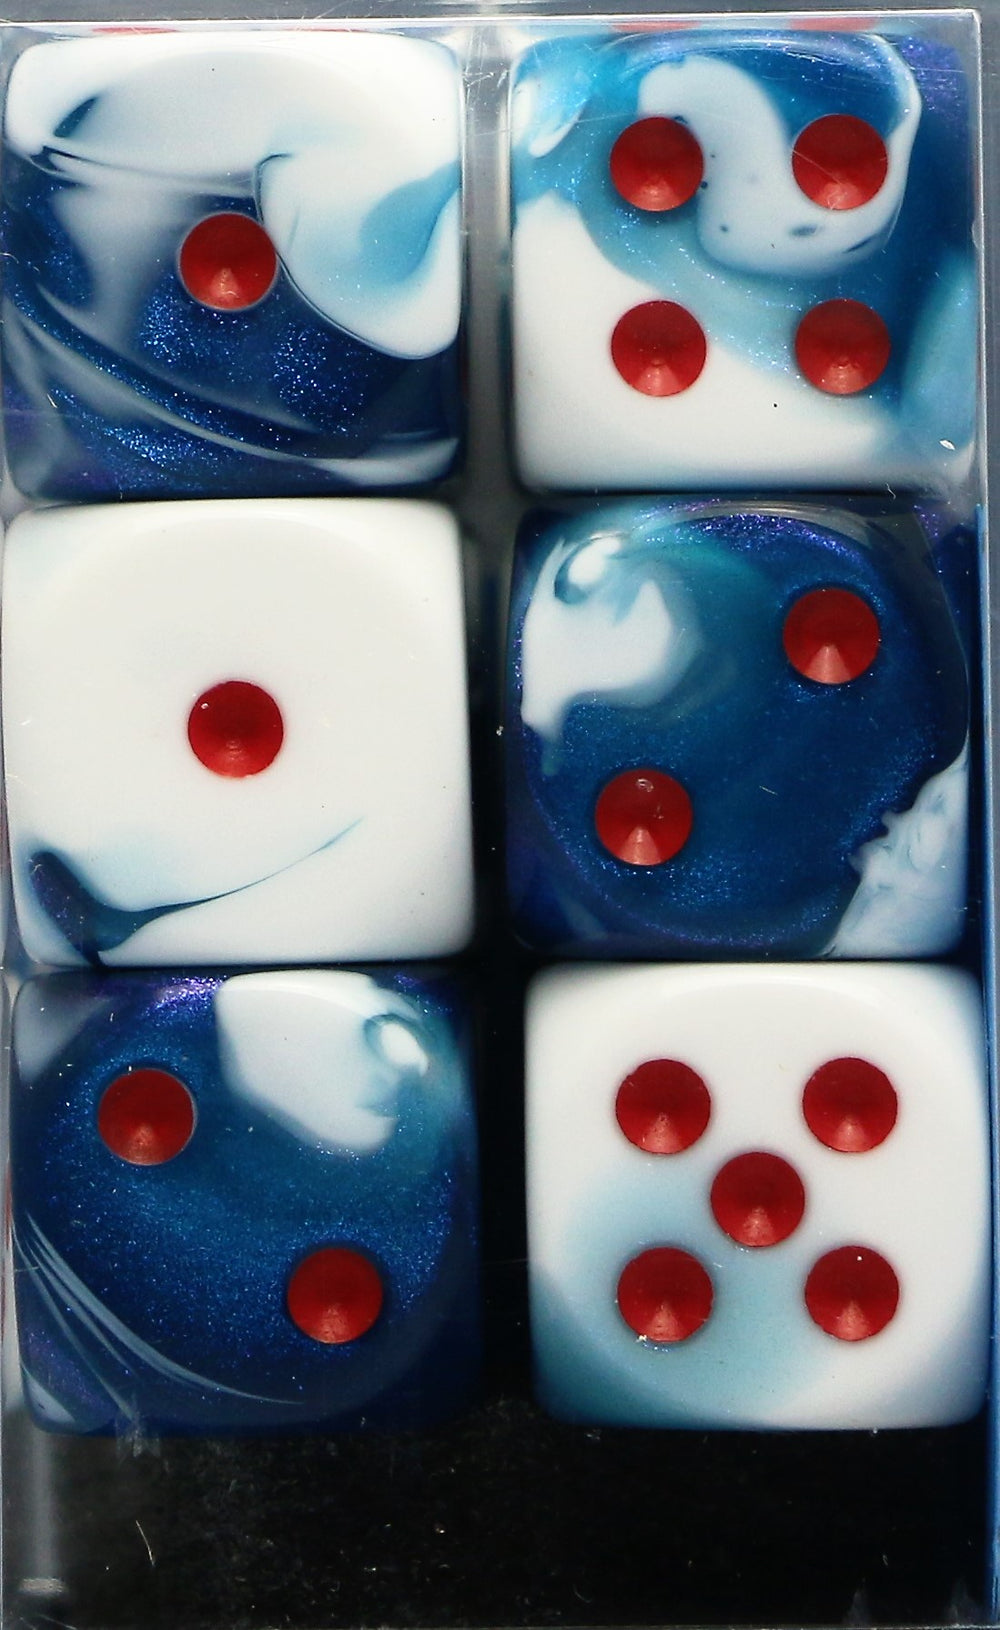 Chessex: 16mm D6 (12 Dice): Gemini: Astral Blue-White / Red (26657)